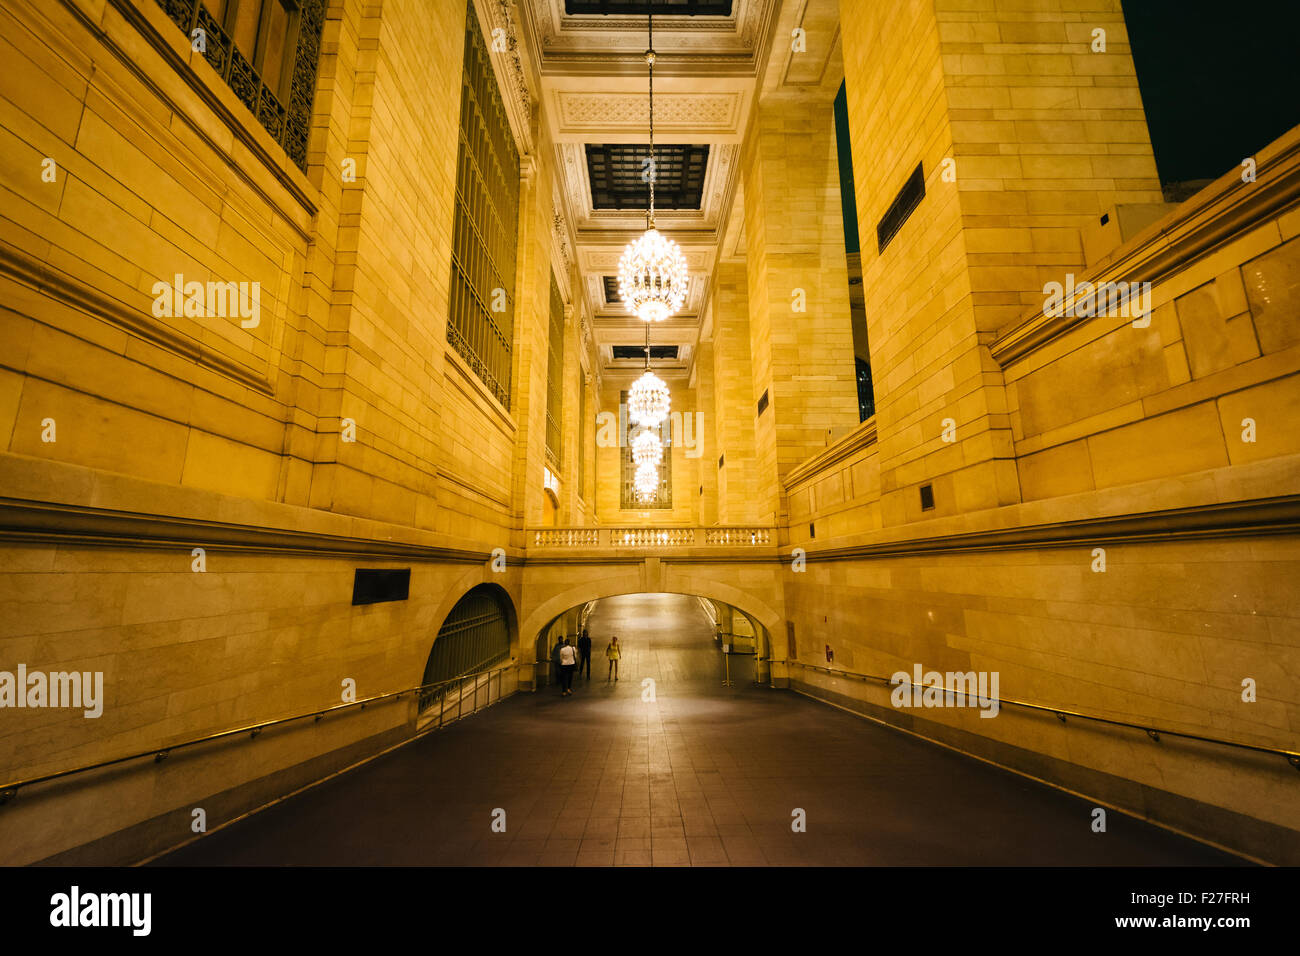 Au passage de la gare Grand Central, au centre de Manhattan, New York. Photo Stock